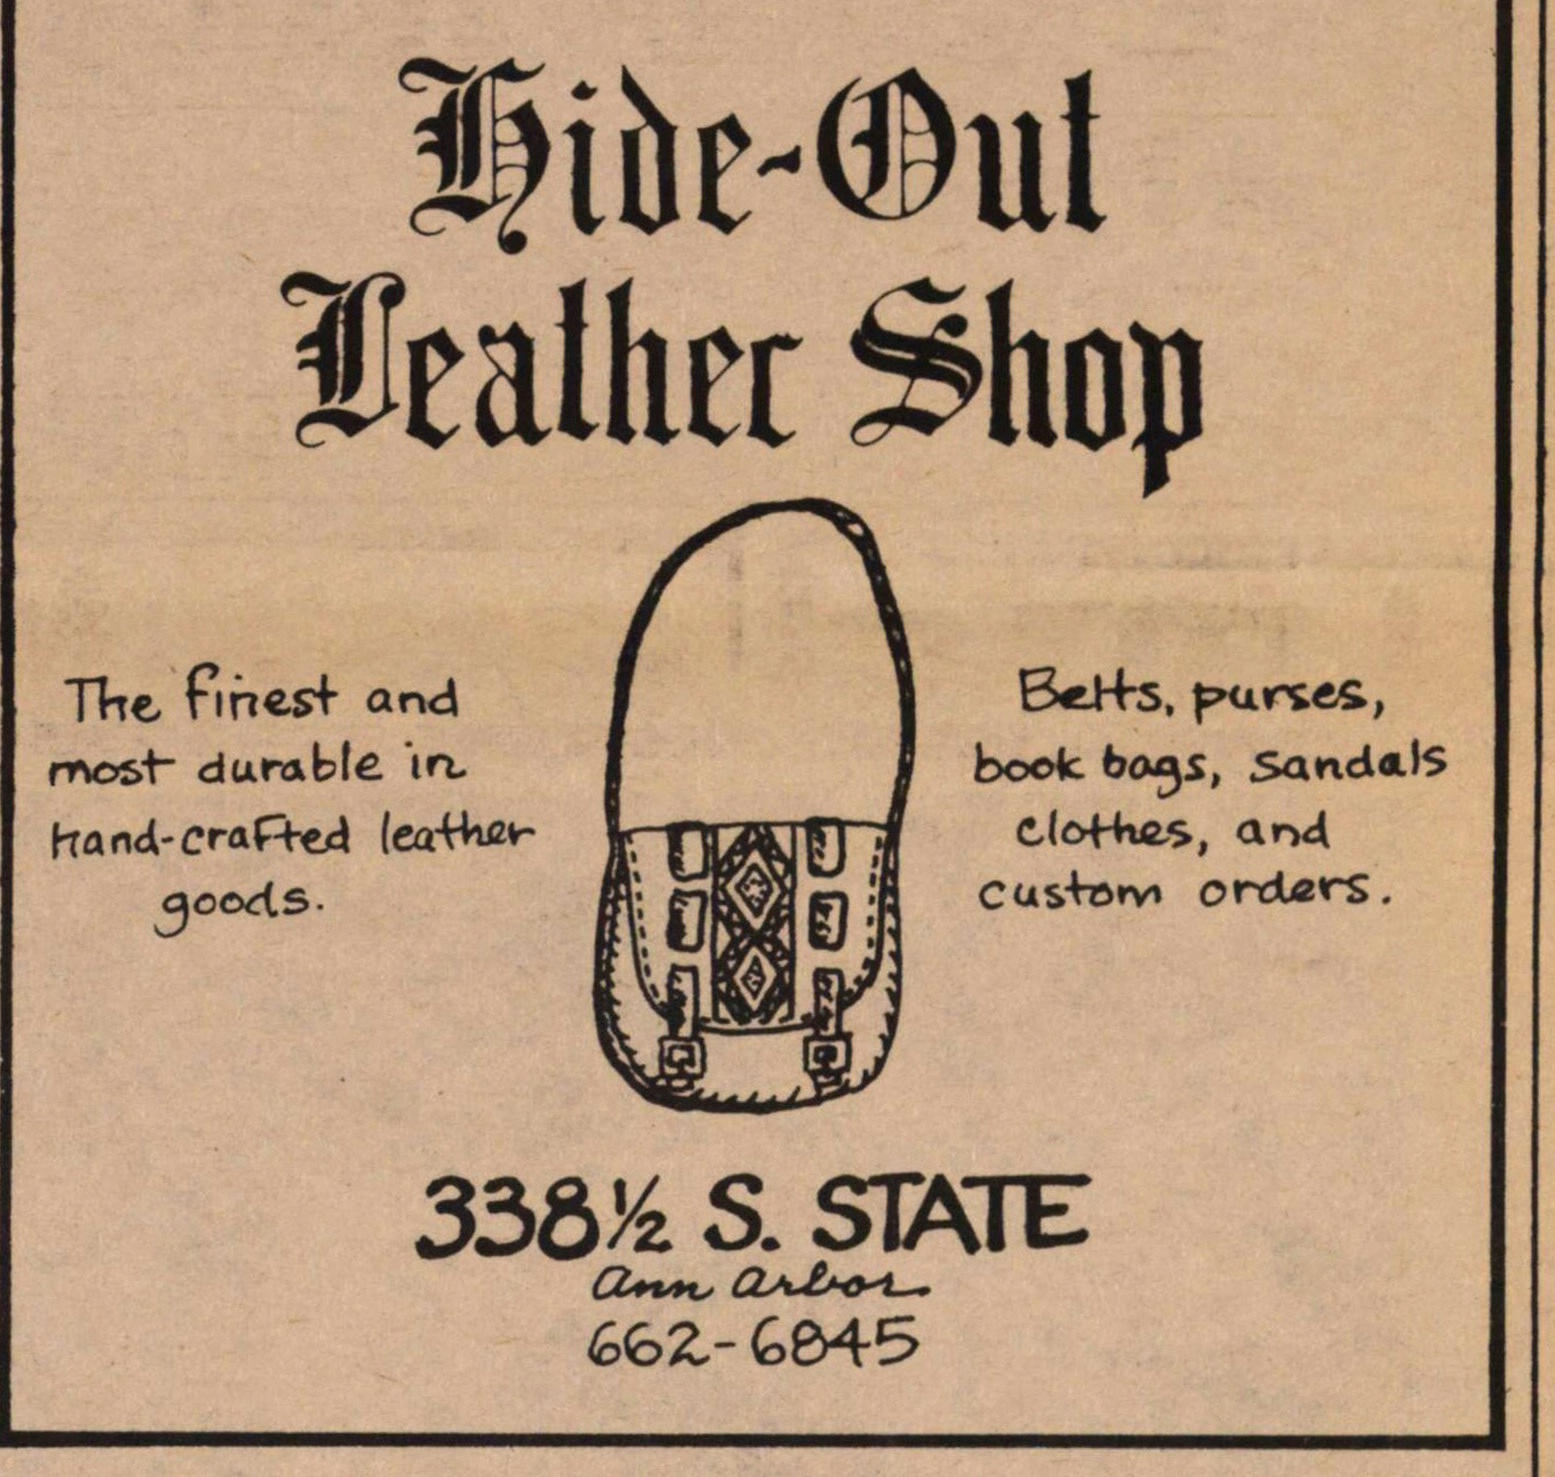 Hide-out Leather Shop image